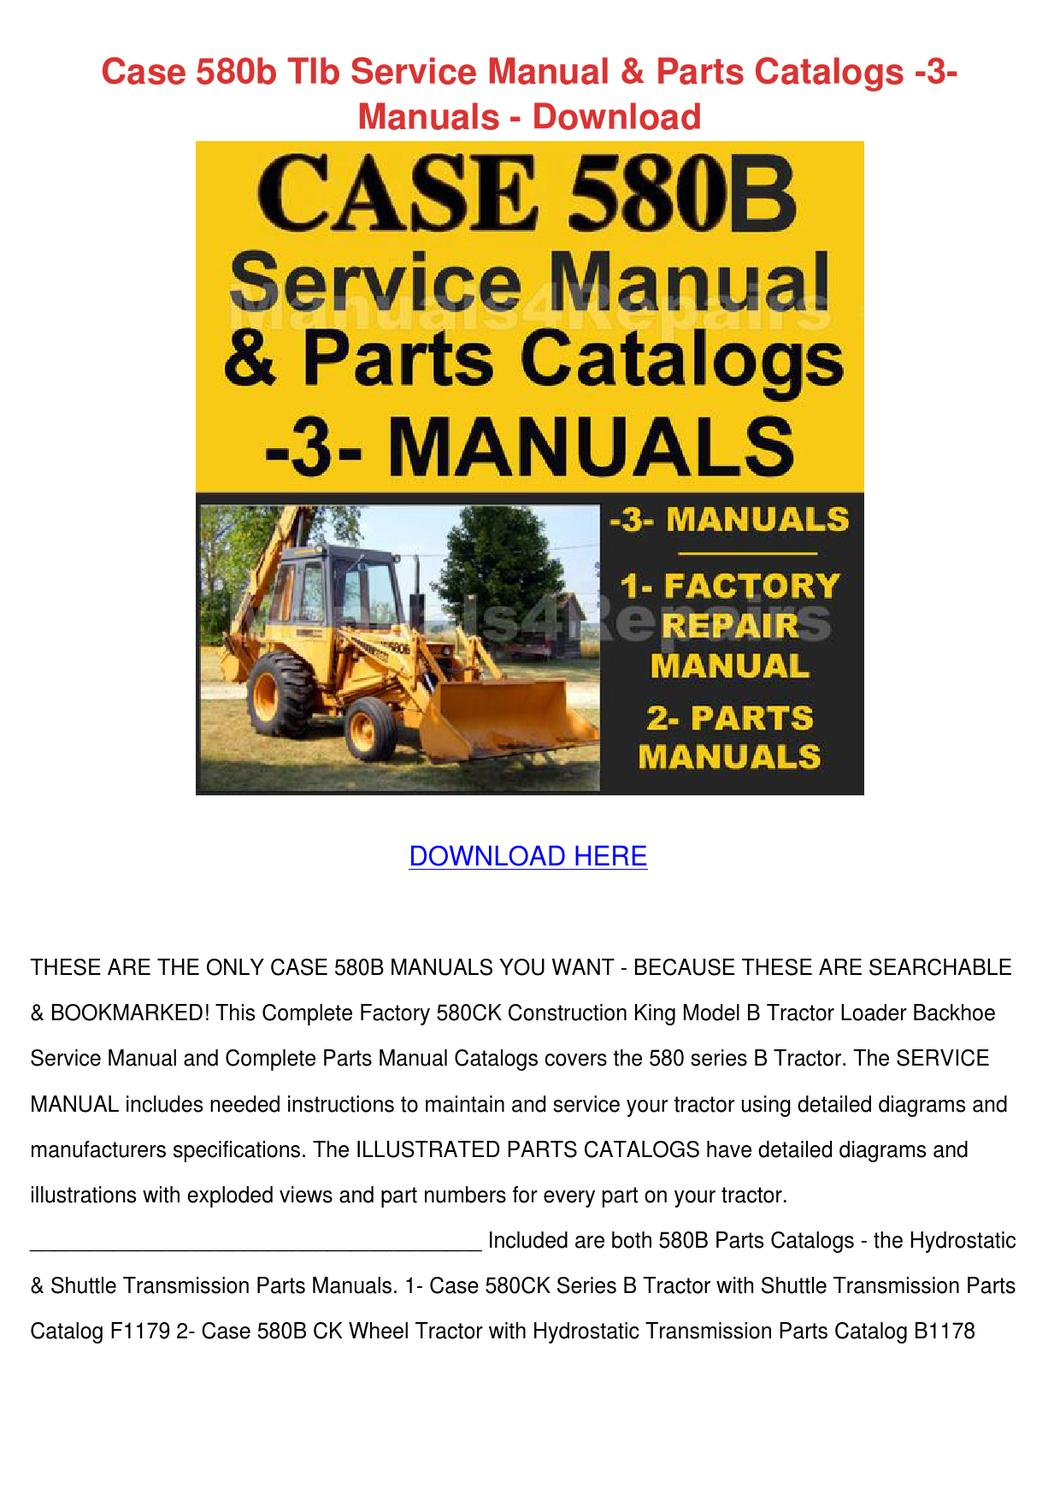 Case 580b Tlb Service Manual Parts Catalogs 3 by ElviraDelgadillo - issuu